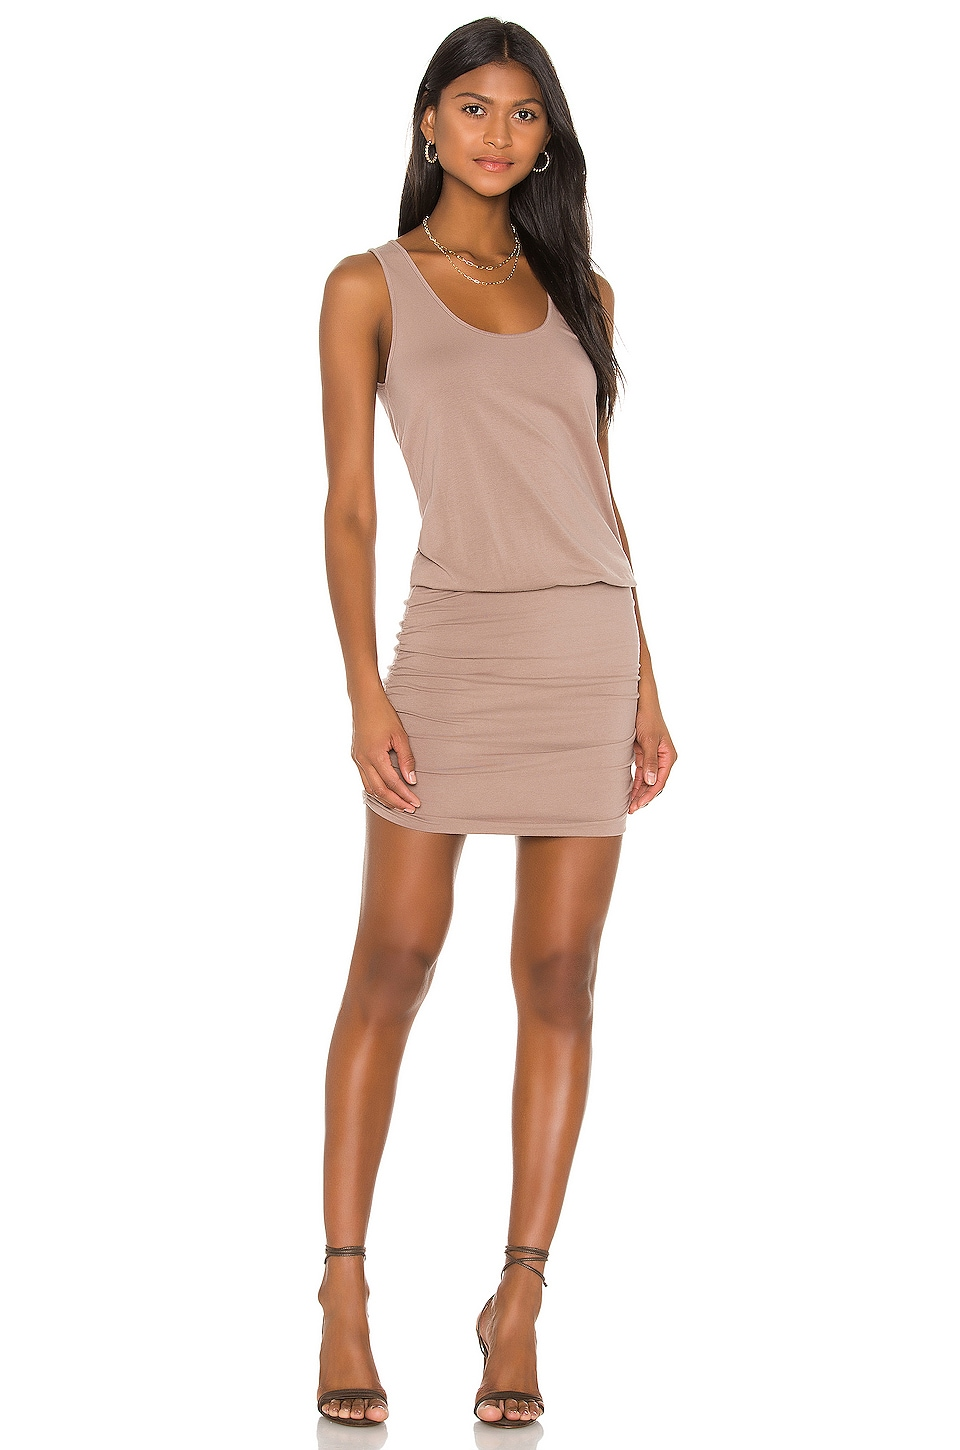 Draped Modal Jersey Mini Dress             Bobi                                                                                                       CA$ 89.17 3